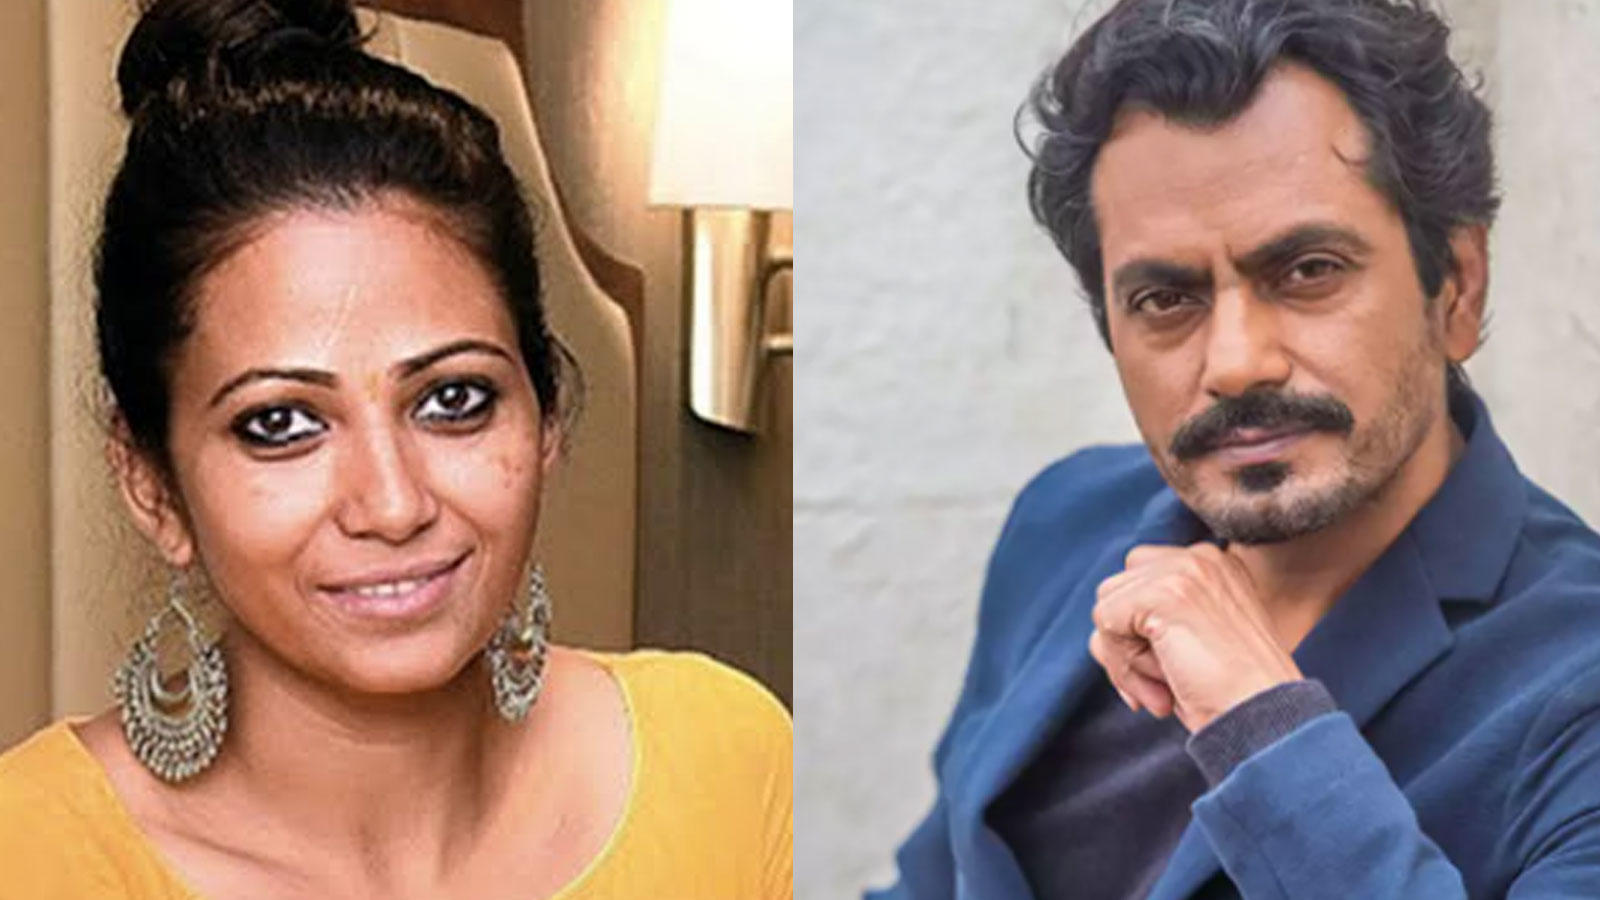 nawazuddin-siddiqui-accused-of-rape-and-cheating-by-estranged-wife-aaliya-siddiqui-in-a-written-complaint